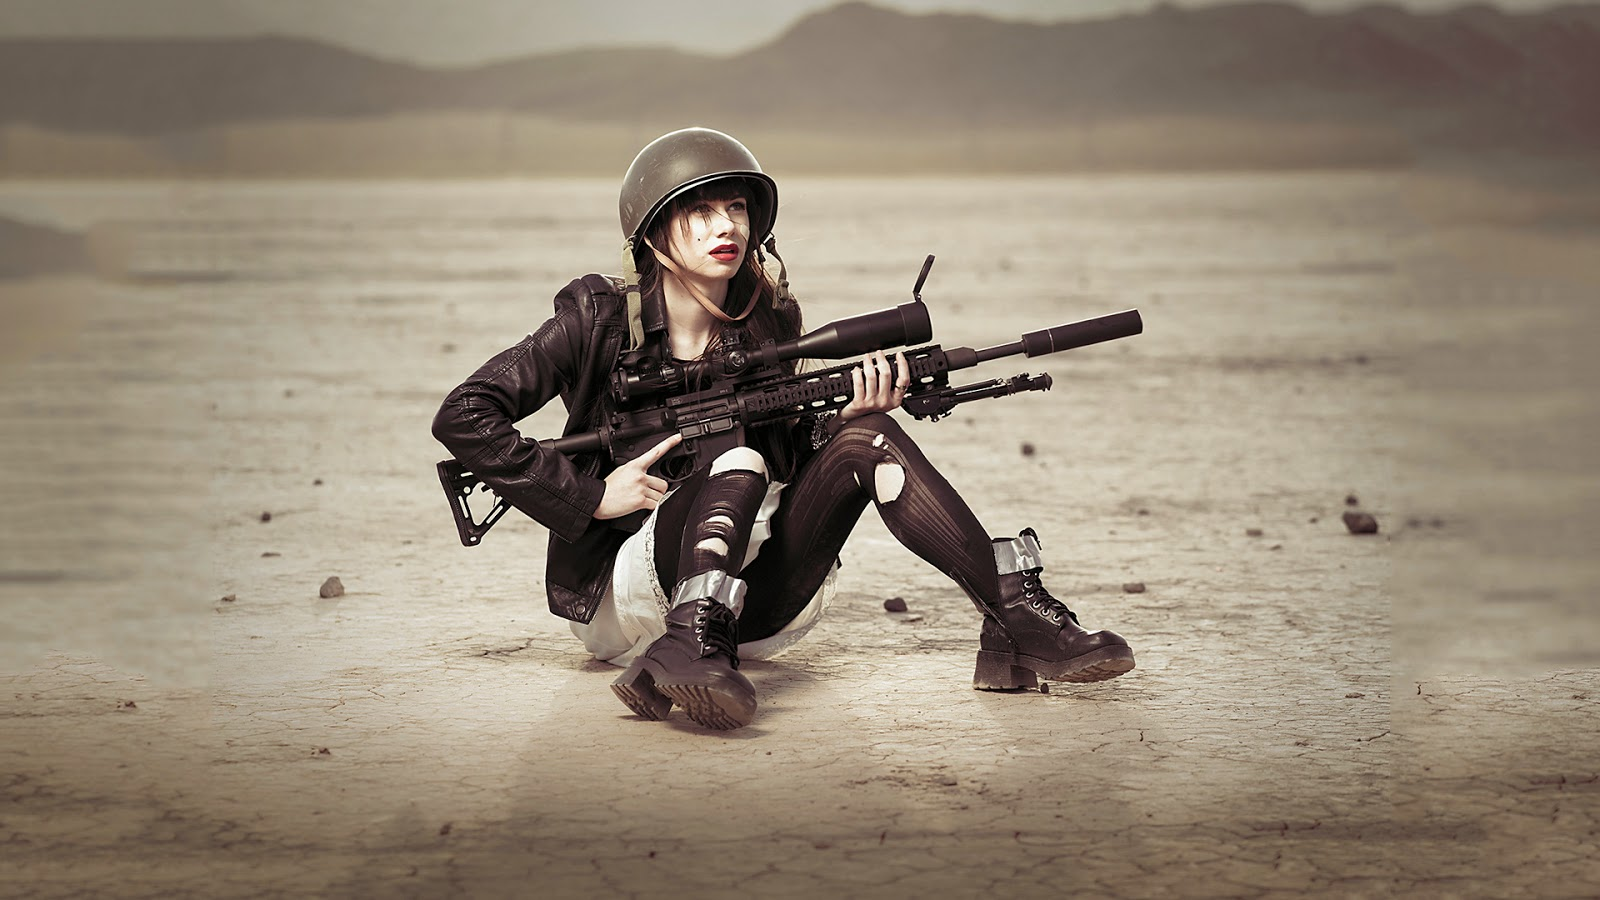 women army sniper wallpaper - photo #6